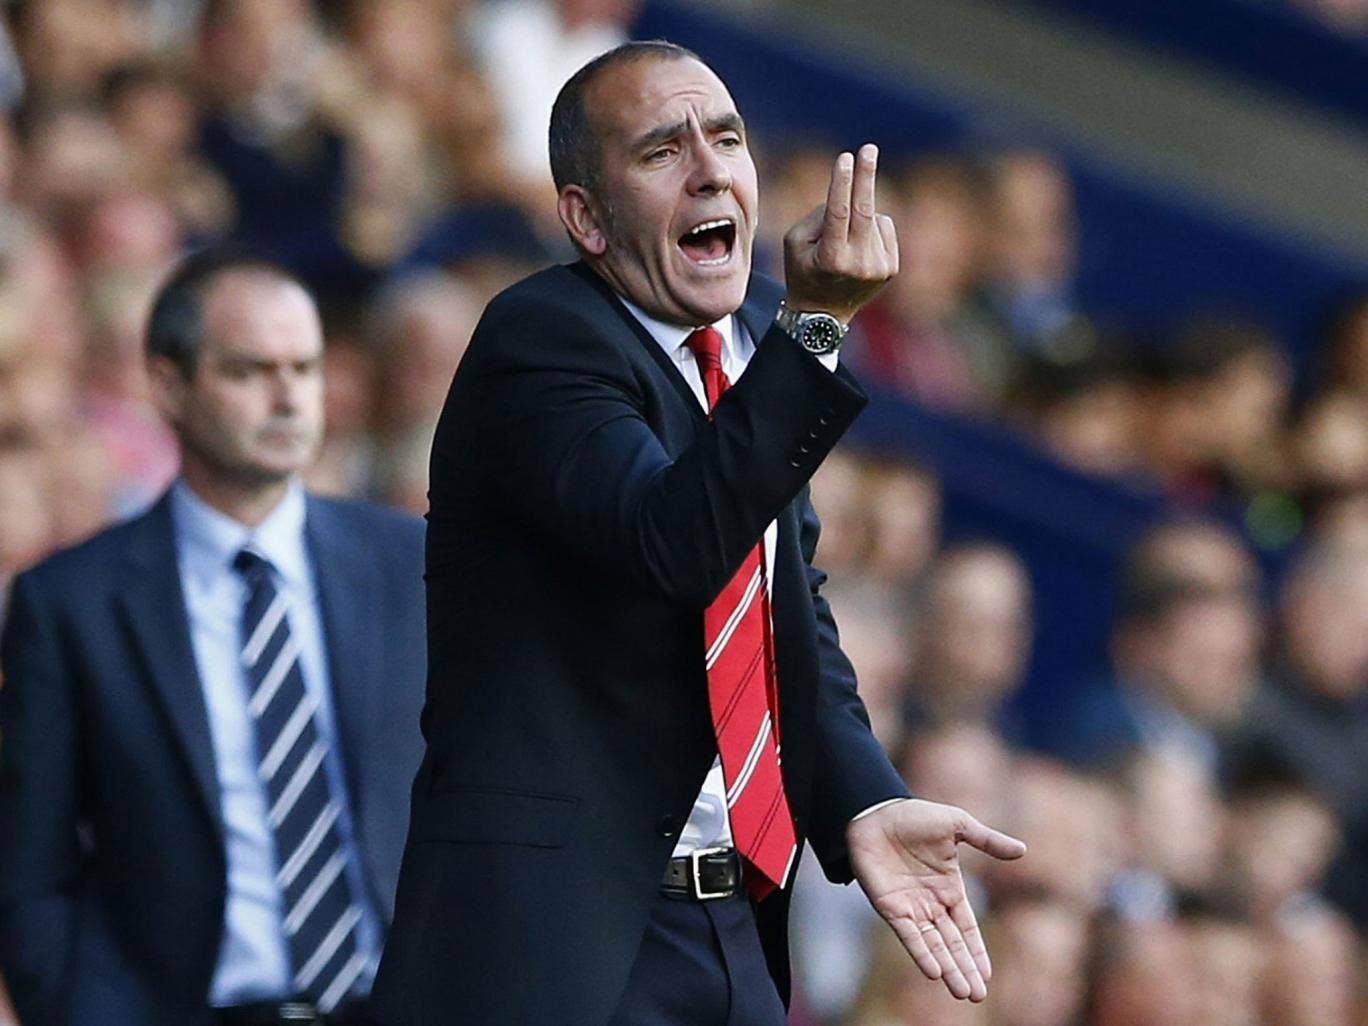 Paolo Di Canio was incredibly harsh in his criticism of players